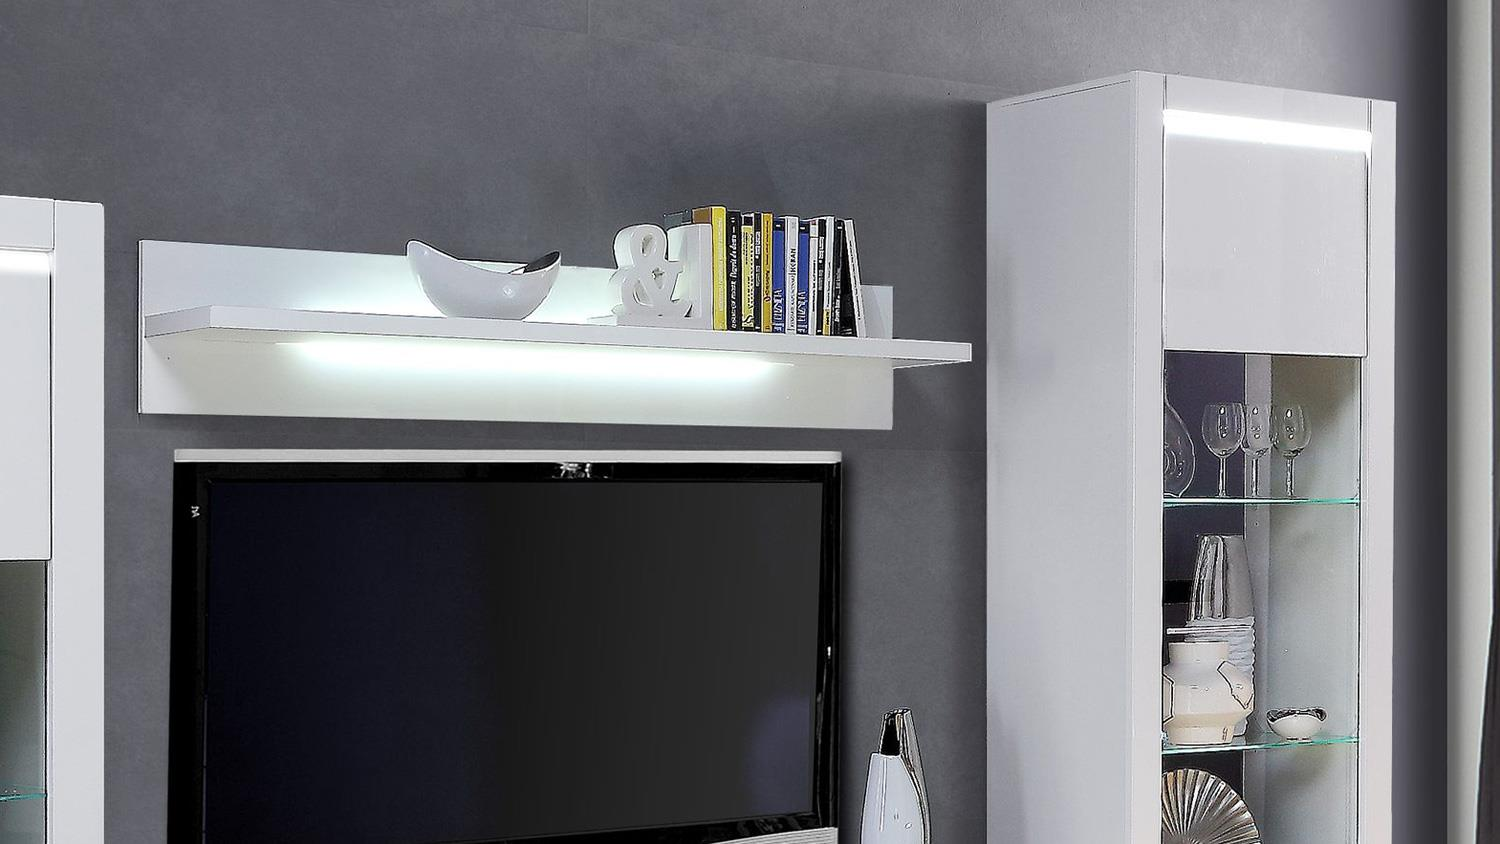 wohnwand l light anbauwand in mdf wei hochglanz inkl led lichtleiste. Black Bedroom Furniture Sets. Home Design Ideas